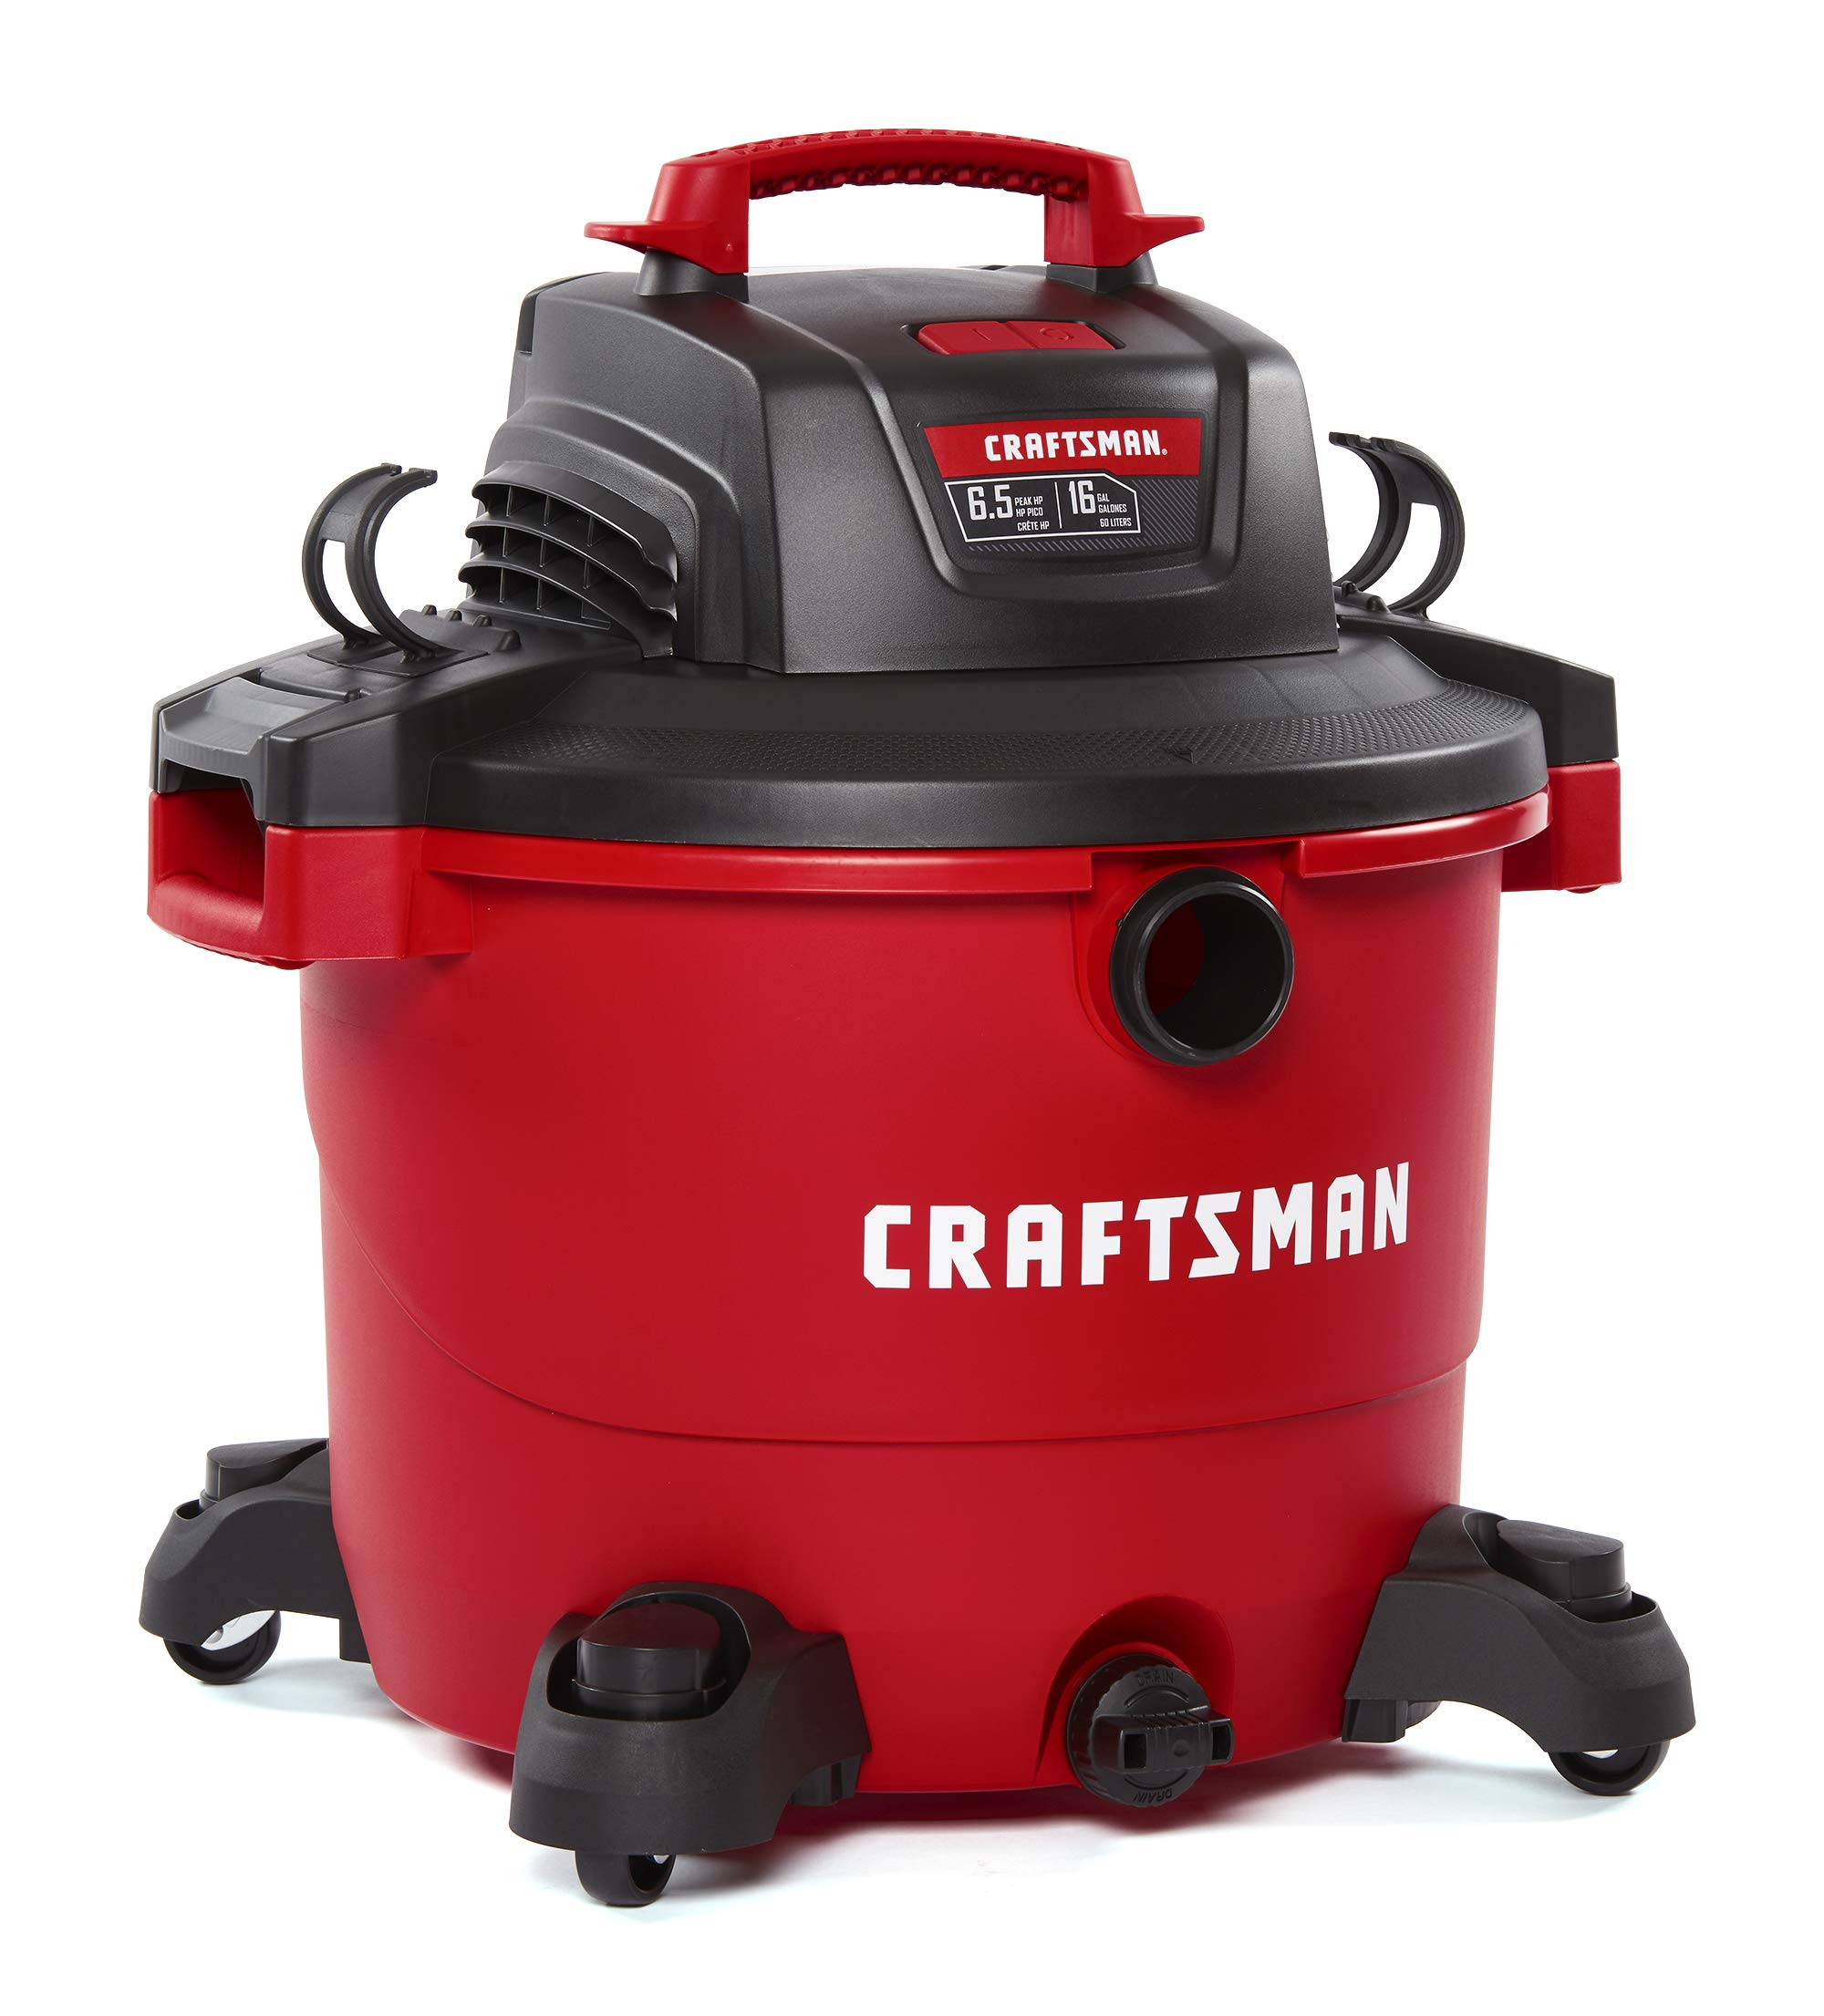 CRAFTSMAN CMXEVBE17595 16 Gallon 6.5 Peak HP Wet/Dry Vac, Heavy-Duty Shop Vacuum with Attachments by Craftsman